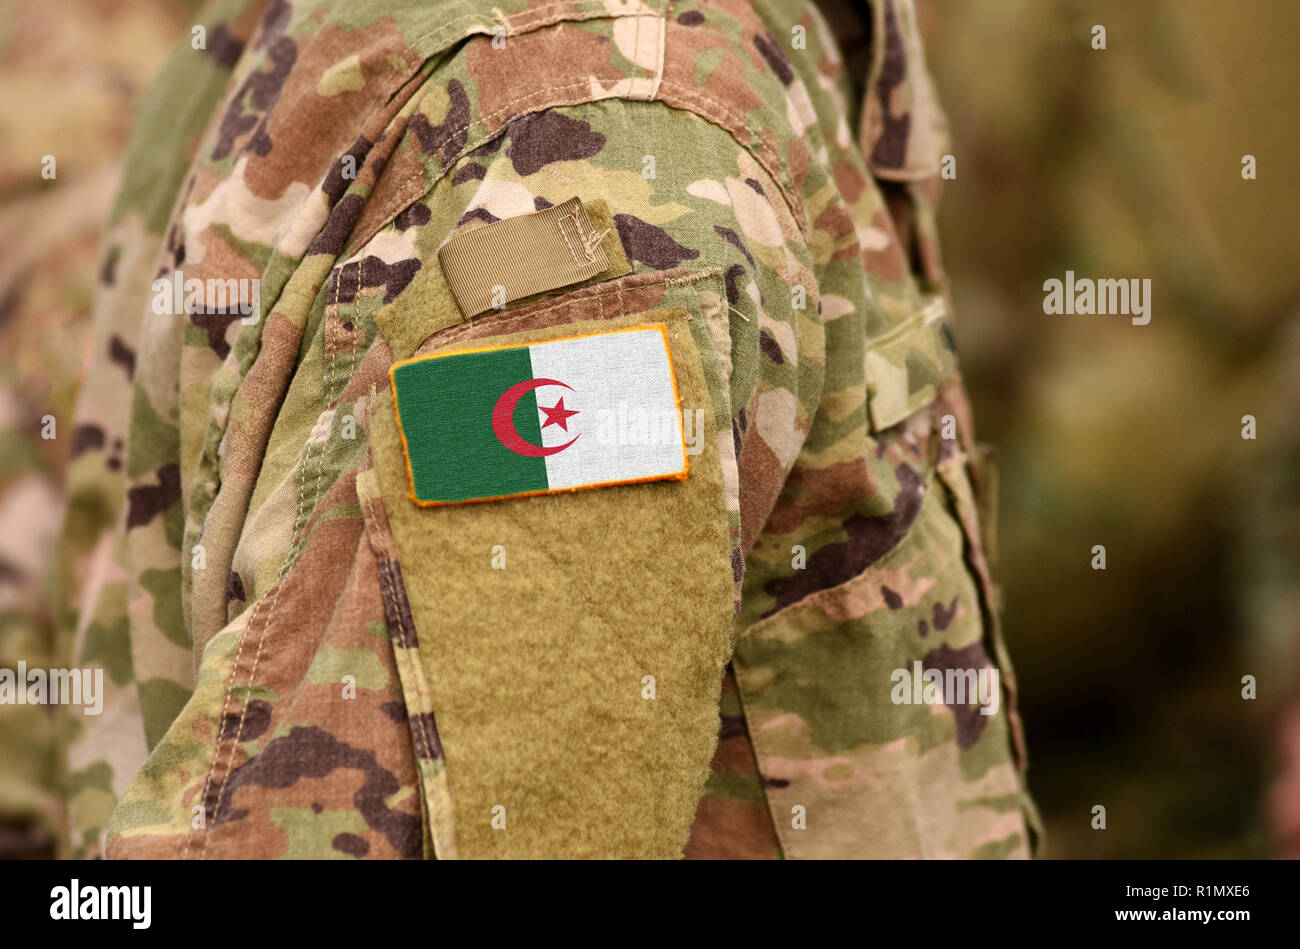 Algeria flag on soldiers arm. People's Democratic Republic of Algeria troops (collage) - Stock Image